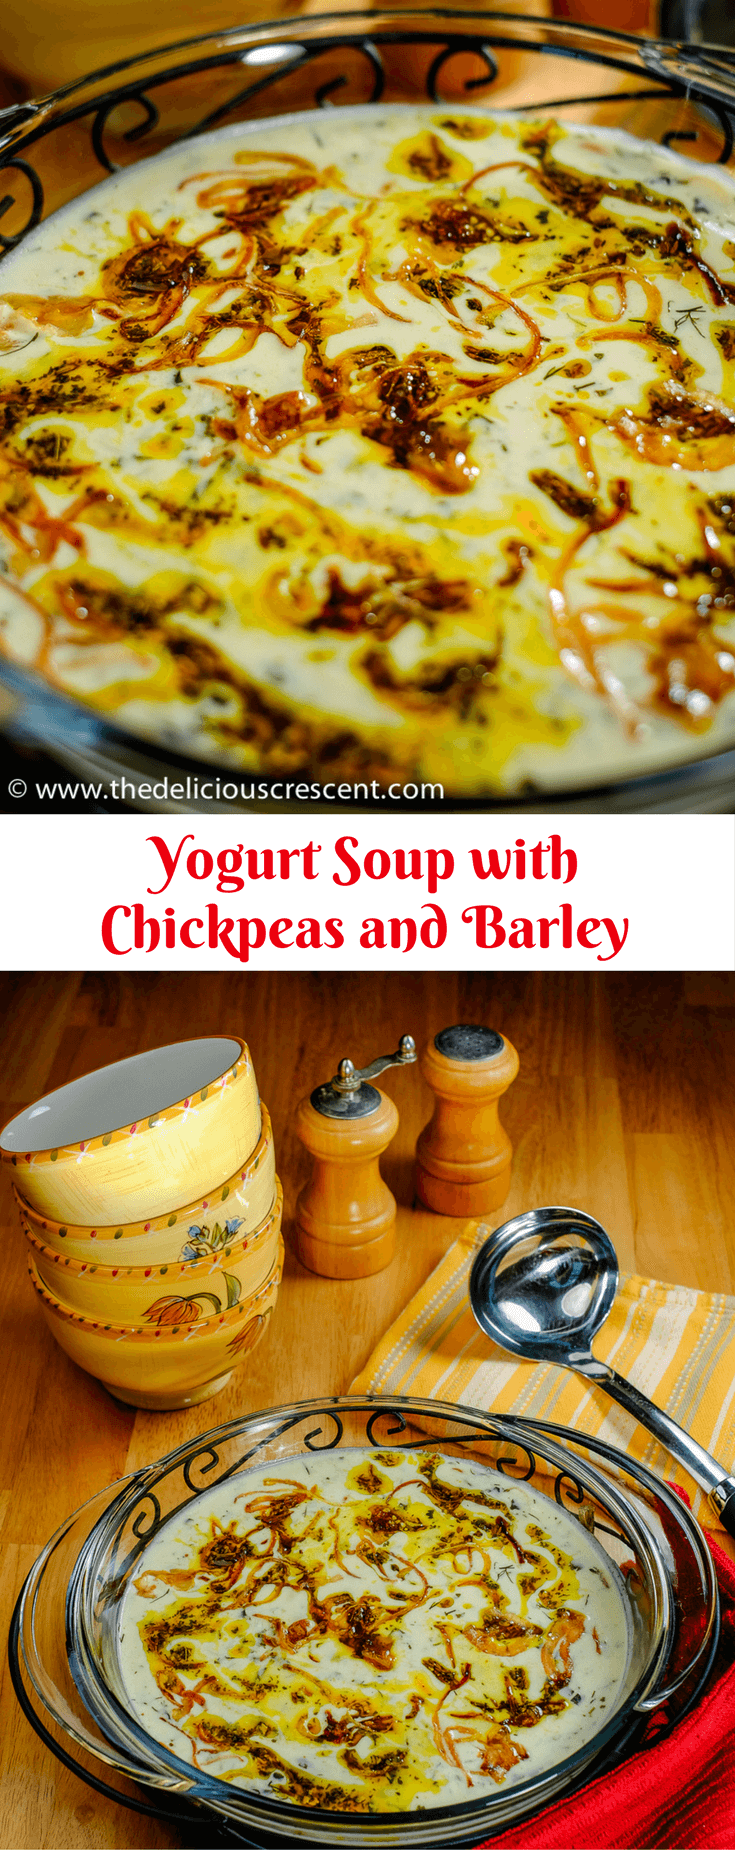 Yogurt Soup with chickpeas and barley is a creamy, aromatic heart healthy vegetarian soup infused with good fiber, protein, potassium and healthy fats!